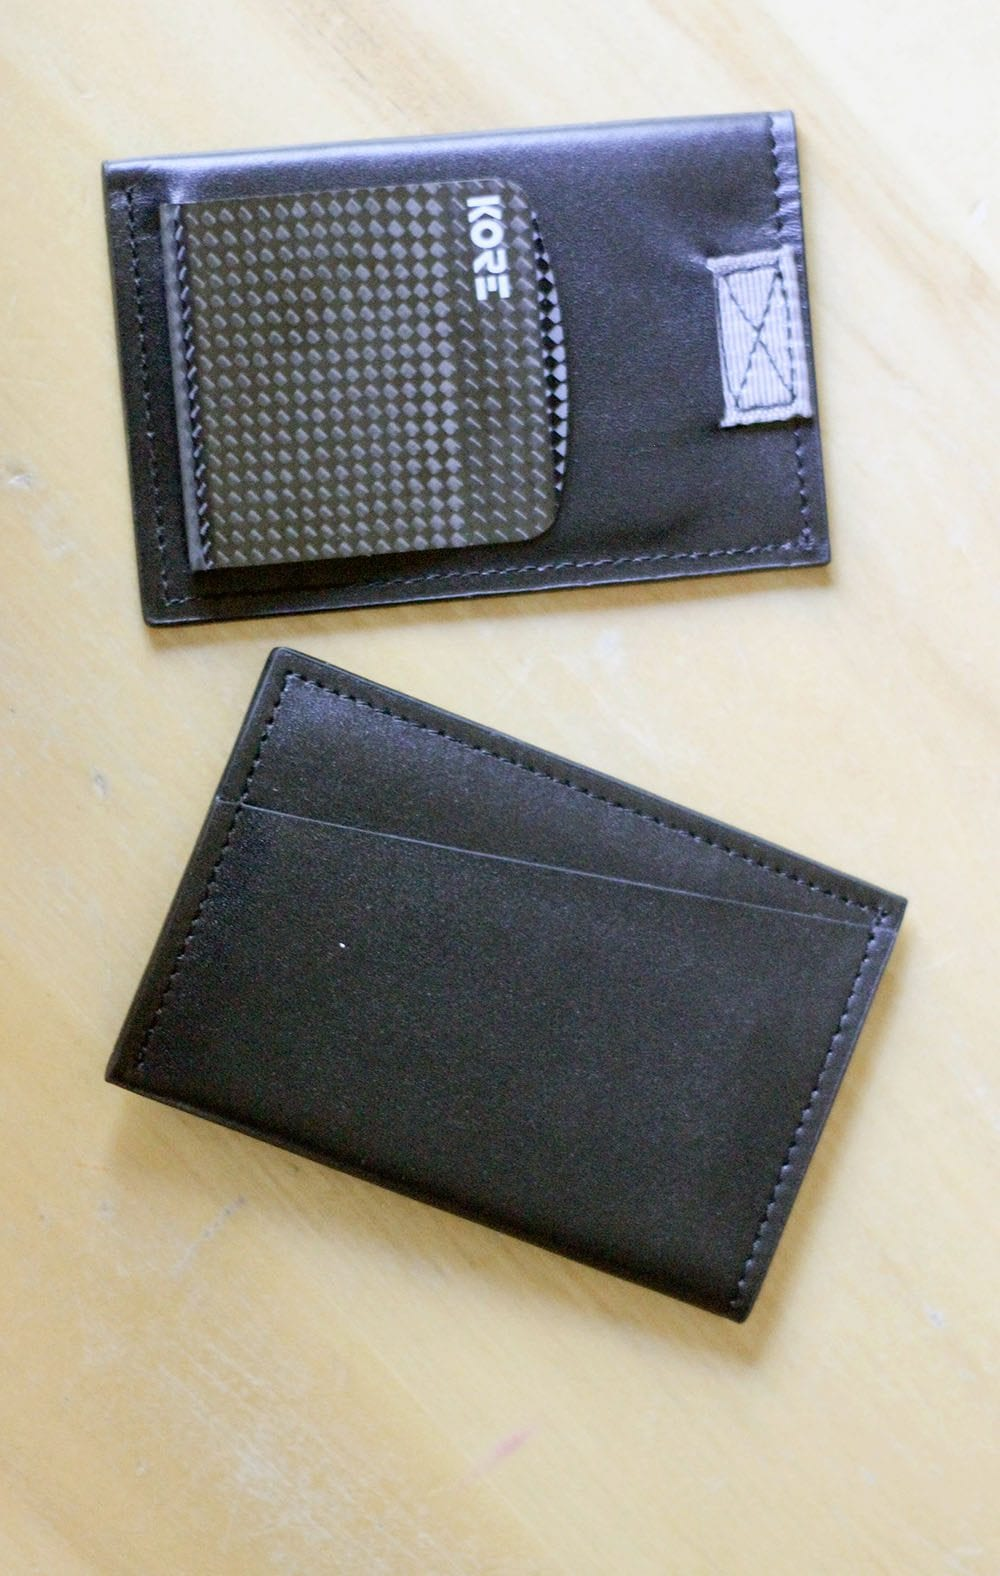 Kore RFID Protected Slim Wallet with Carbon Fiber Money Clip